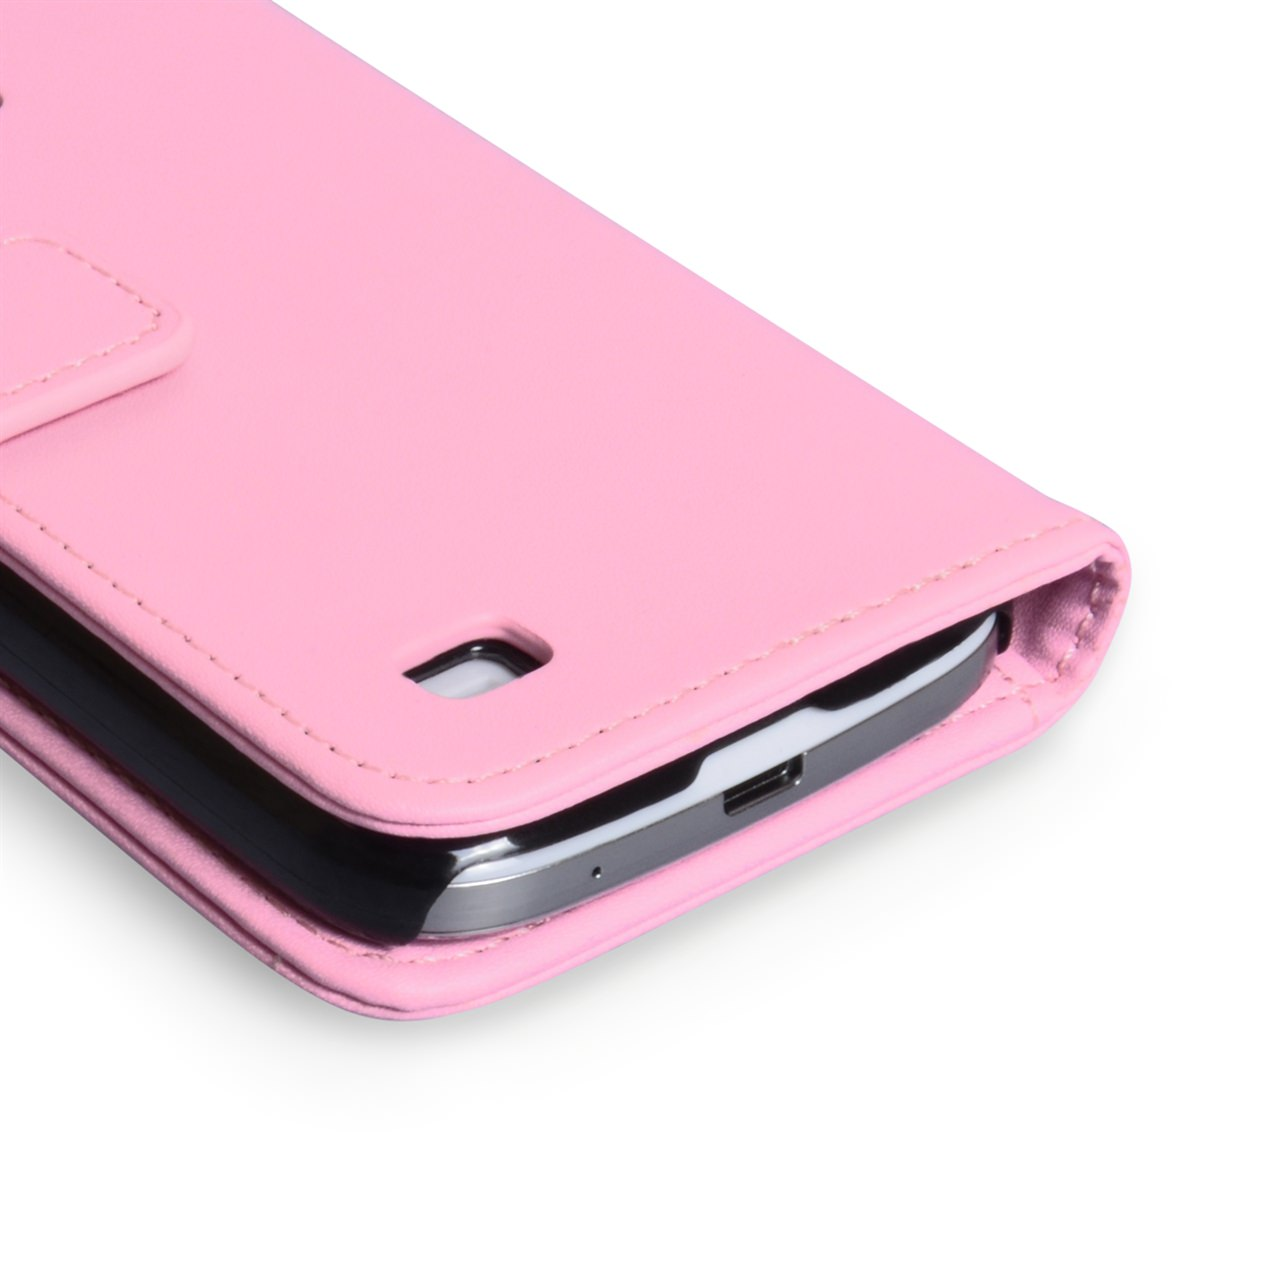 YouSave Samsung Galaxy S4 Mini Leather Effect Wallet Case - Pink